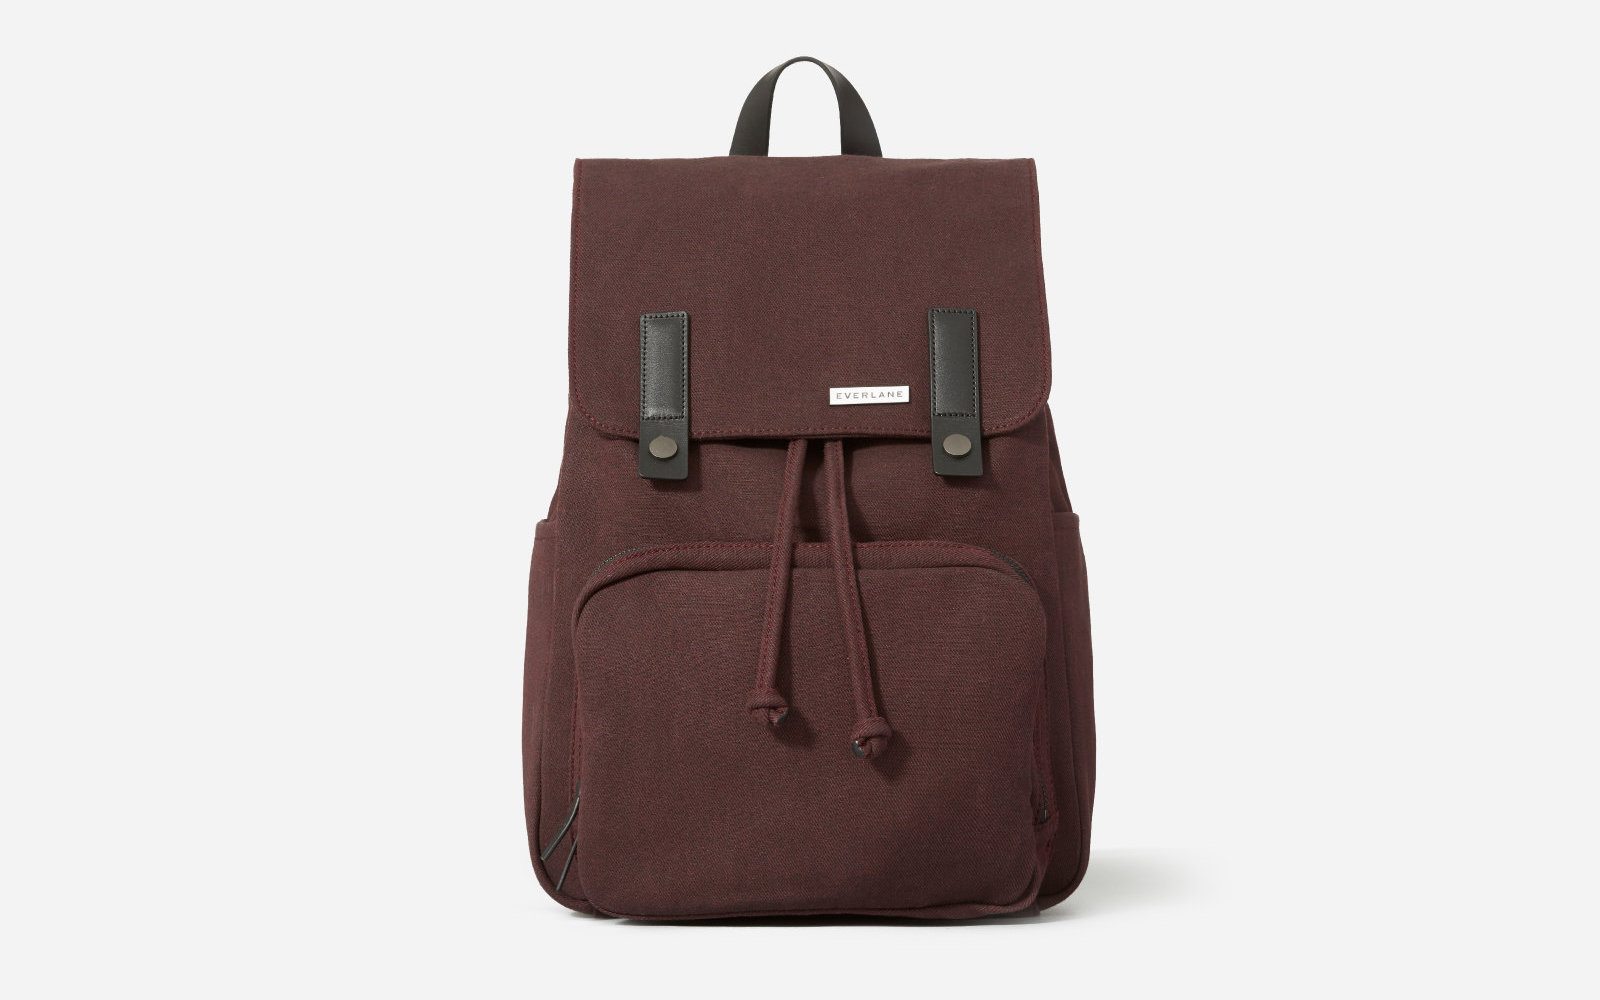 The Most Stylish Travel Backpacks For Women  f6dca0e09d